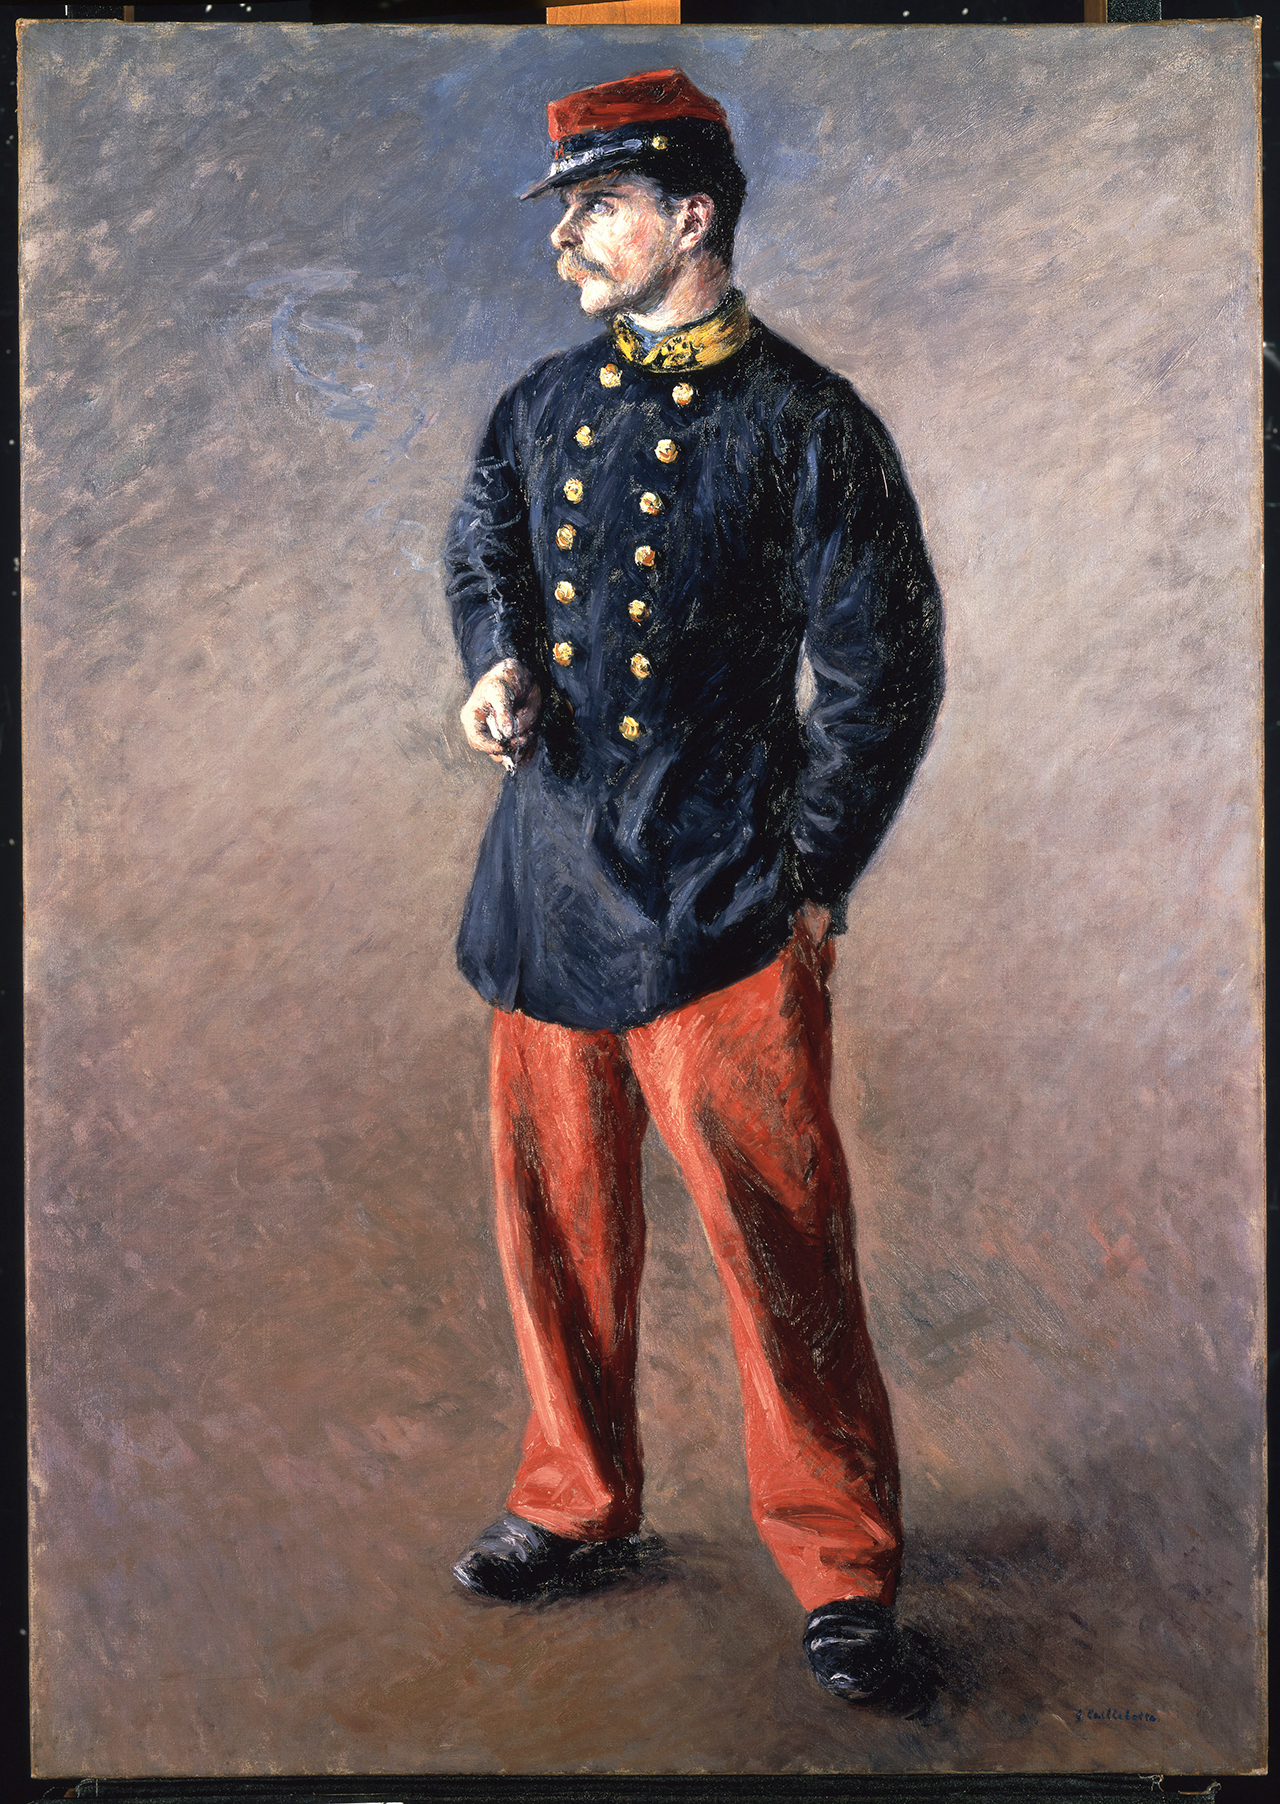 """Gustave Caillebotte, """"Un Soldat"""" (1881), oil on canvas, 42 x 29 1/2 in. (106.7 x 74.9 cm)"""